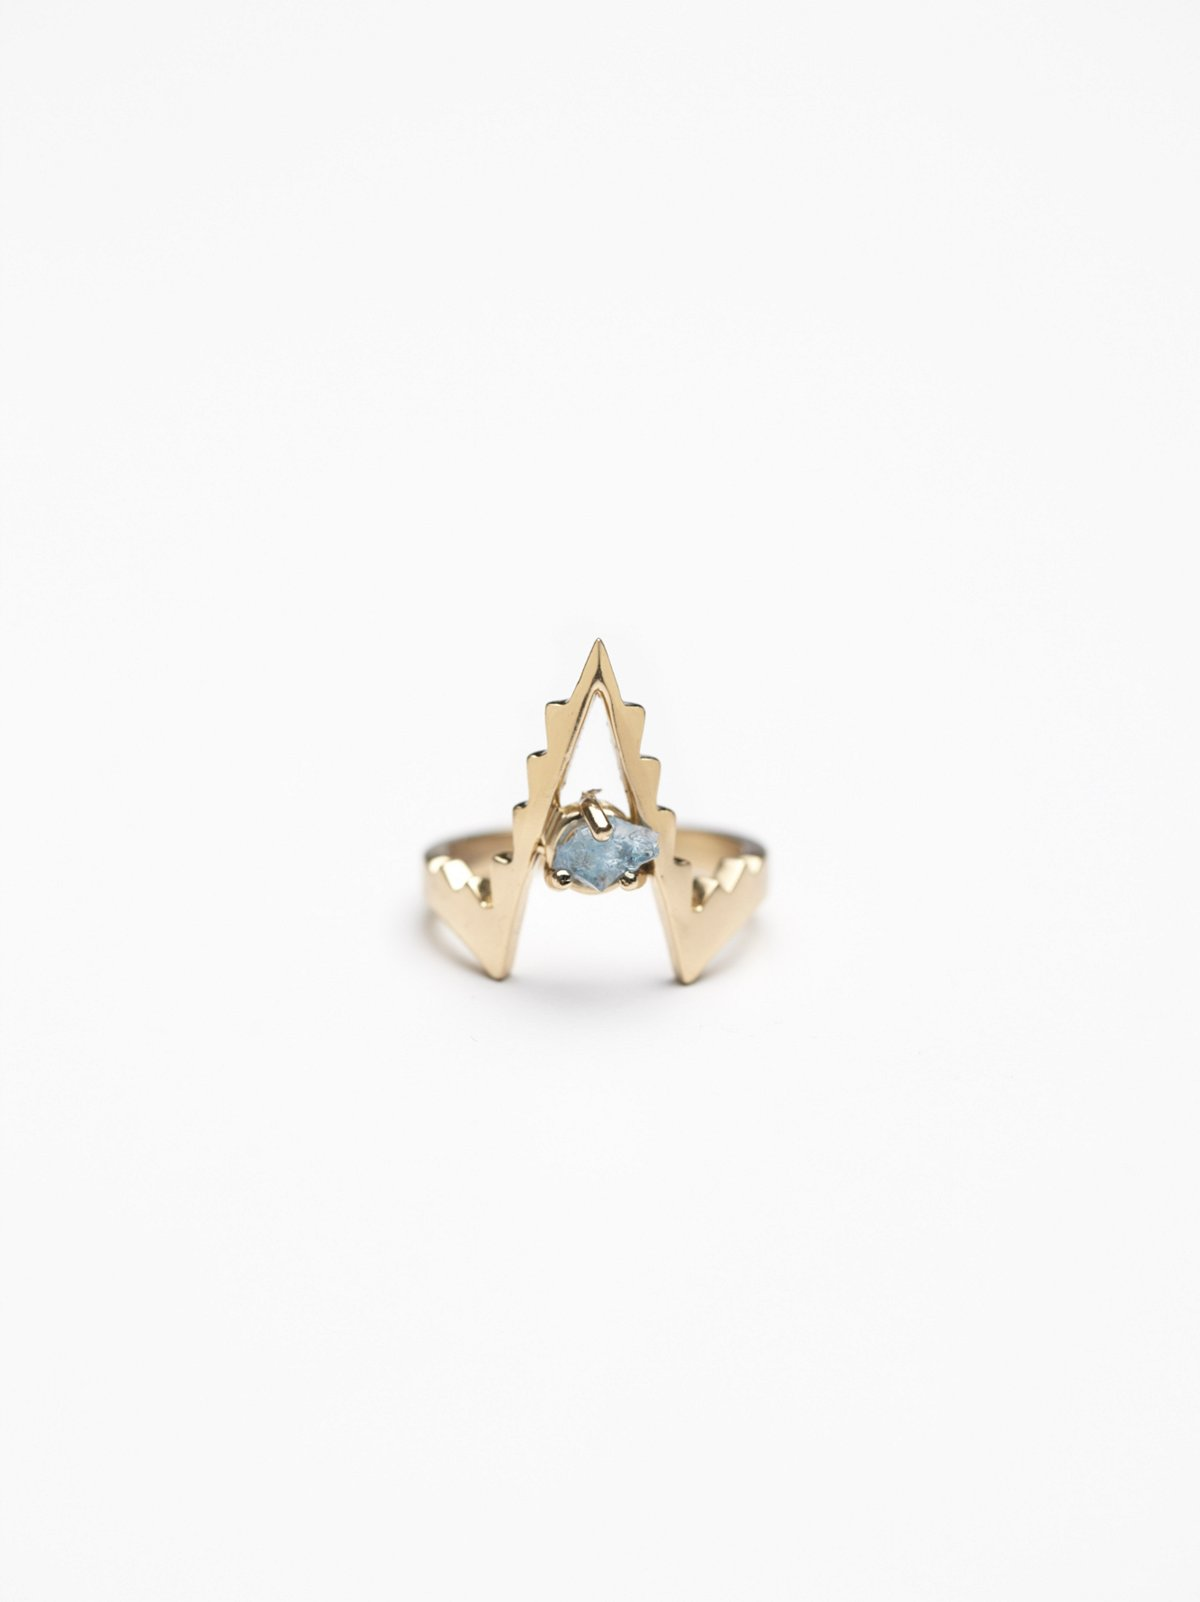 Unearthly Ring